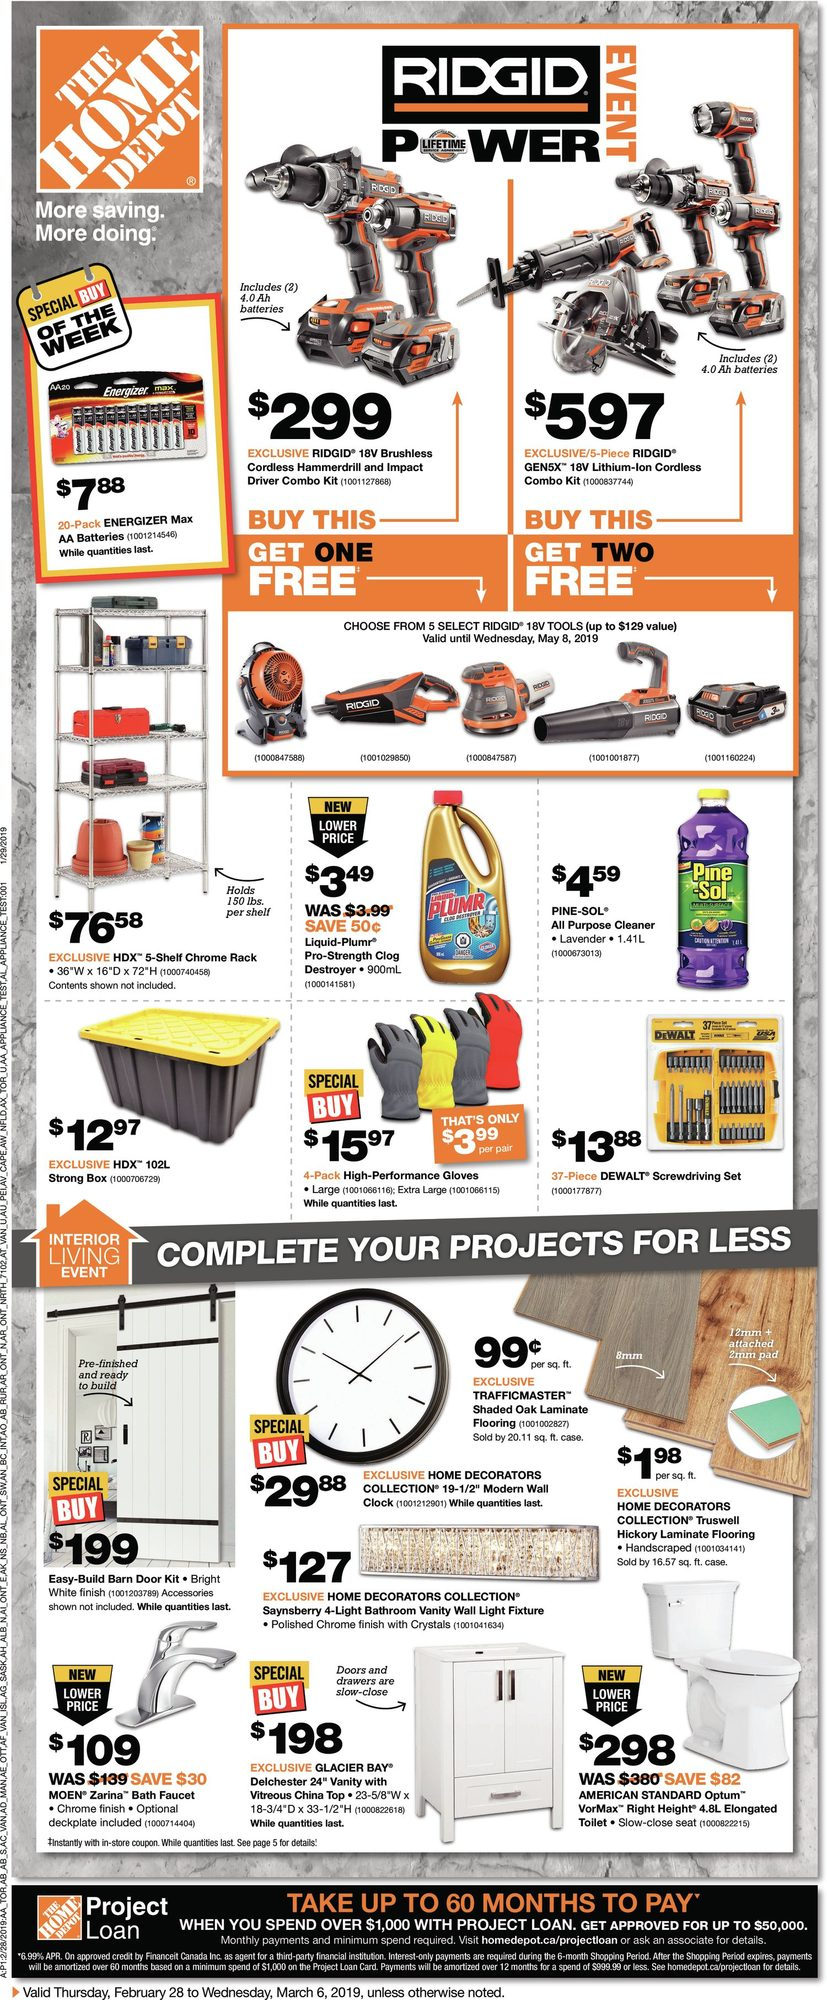 Weekly - Ridgid Power Event - Home Depot February 28 2019